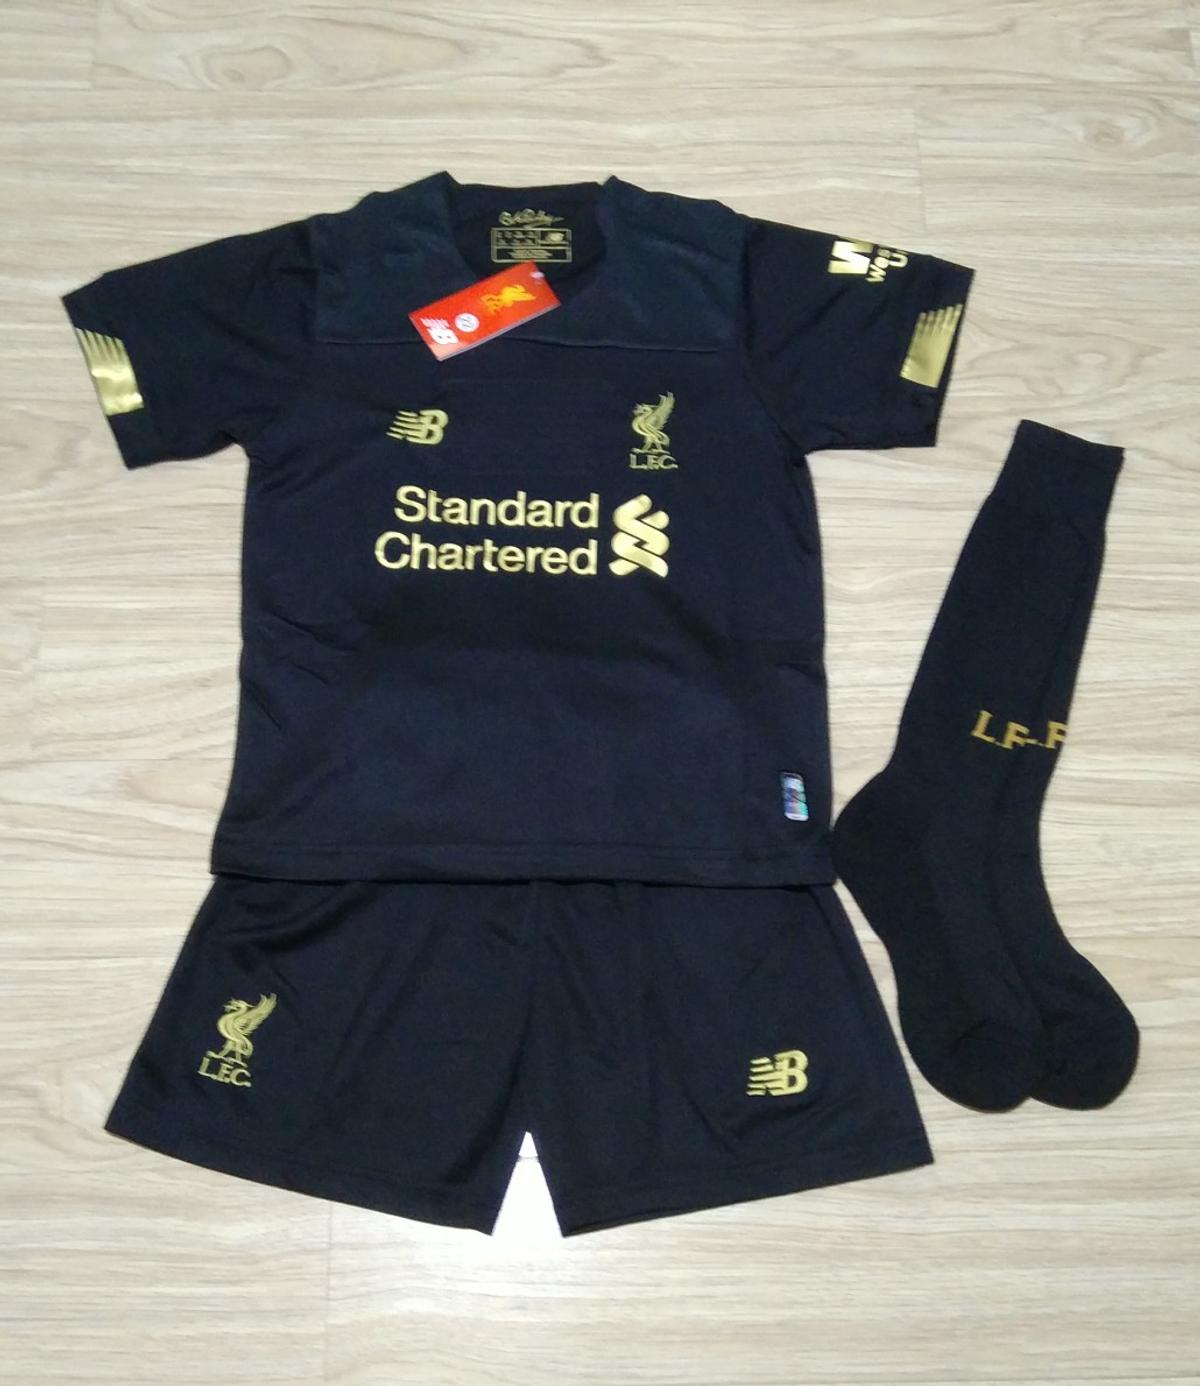 online retailer 57e2d c4c96 Liverpool Kids Goalkeeper Football Kit in L1 5BY 利物浦 for ...